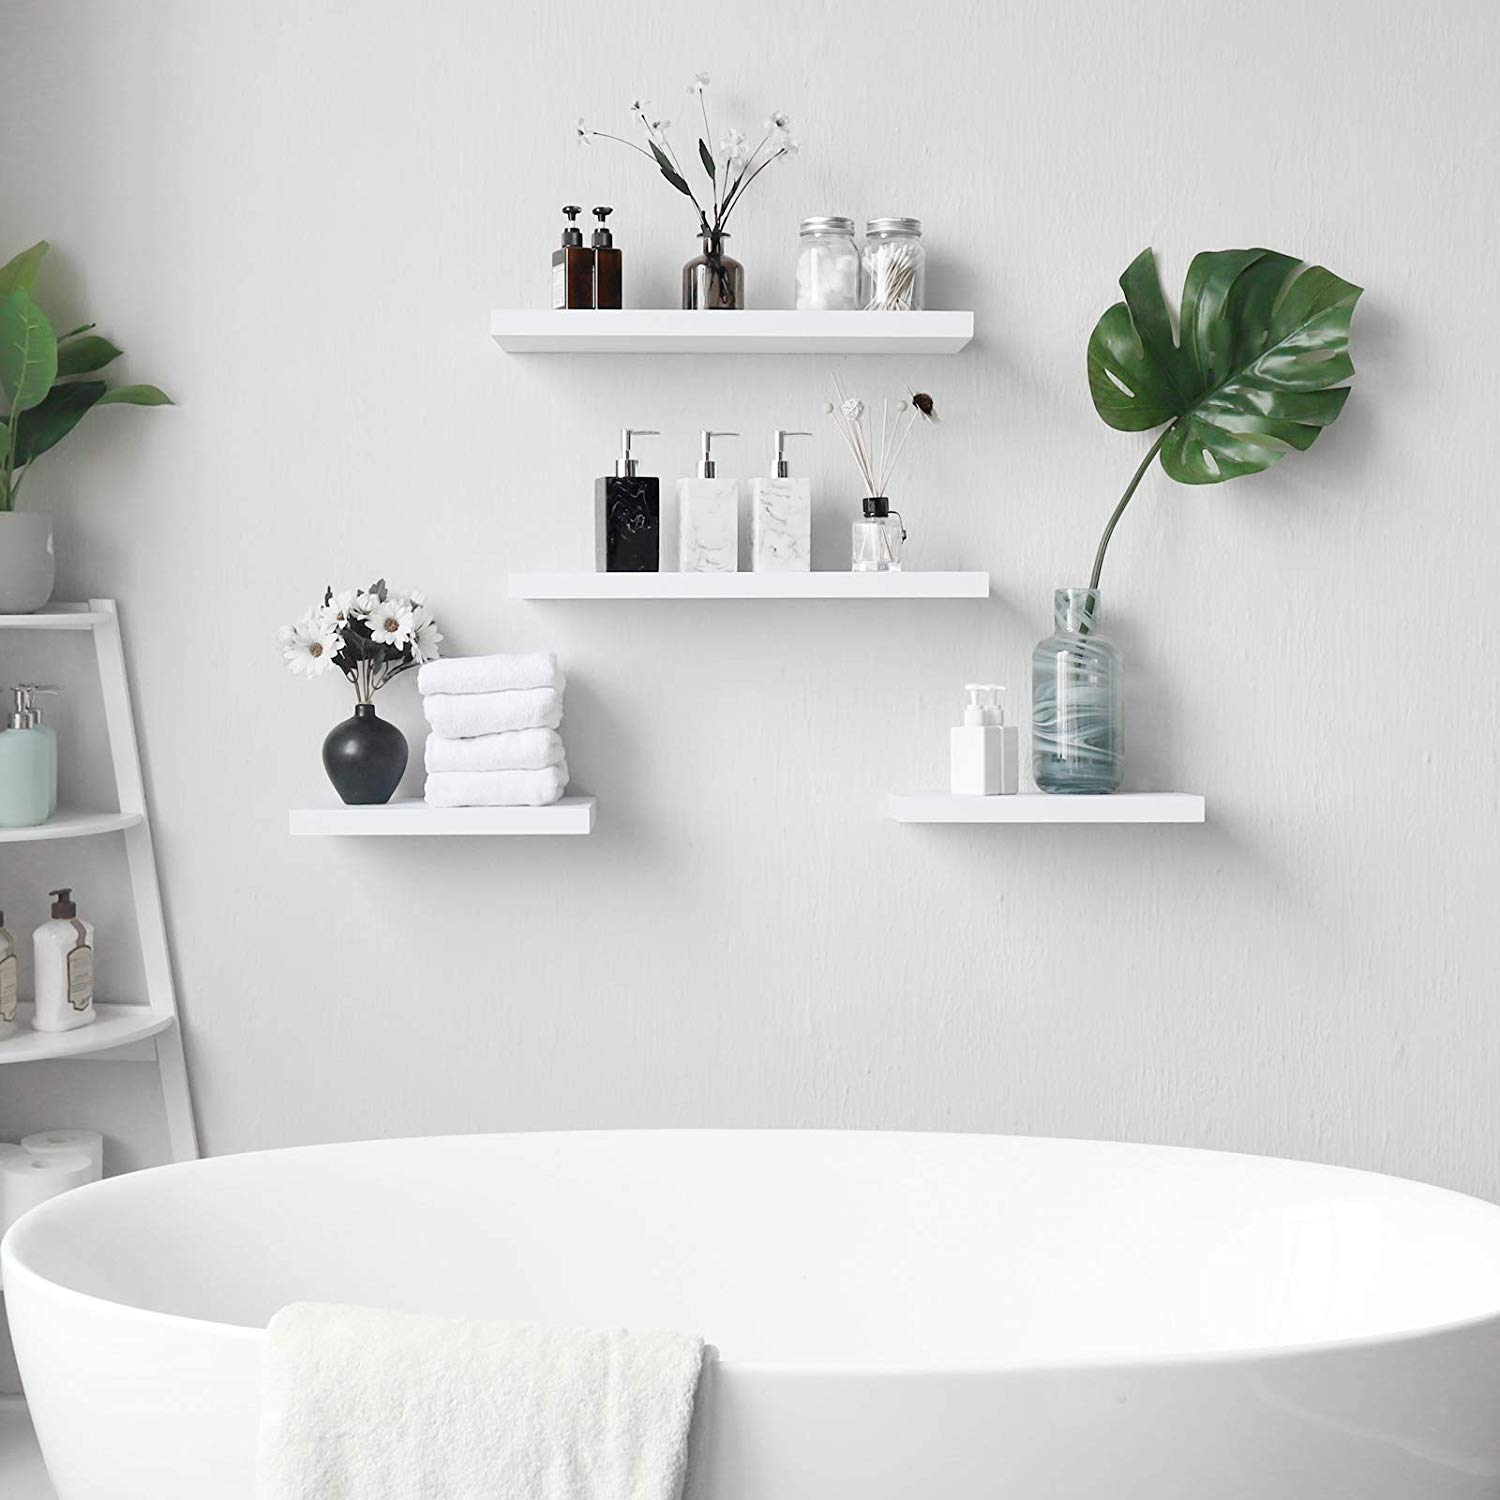 15 Inch Length Wall Mount Floating Shelves For Home Decor Set Of Two Wellandstore